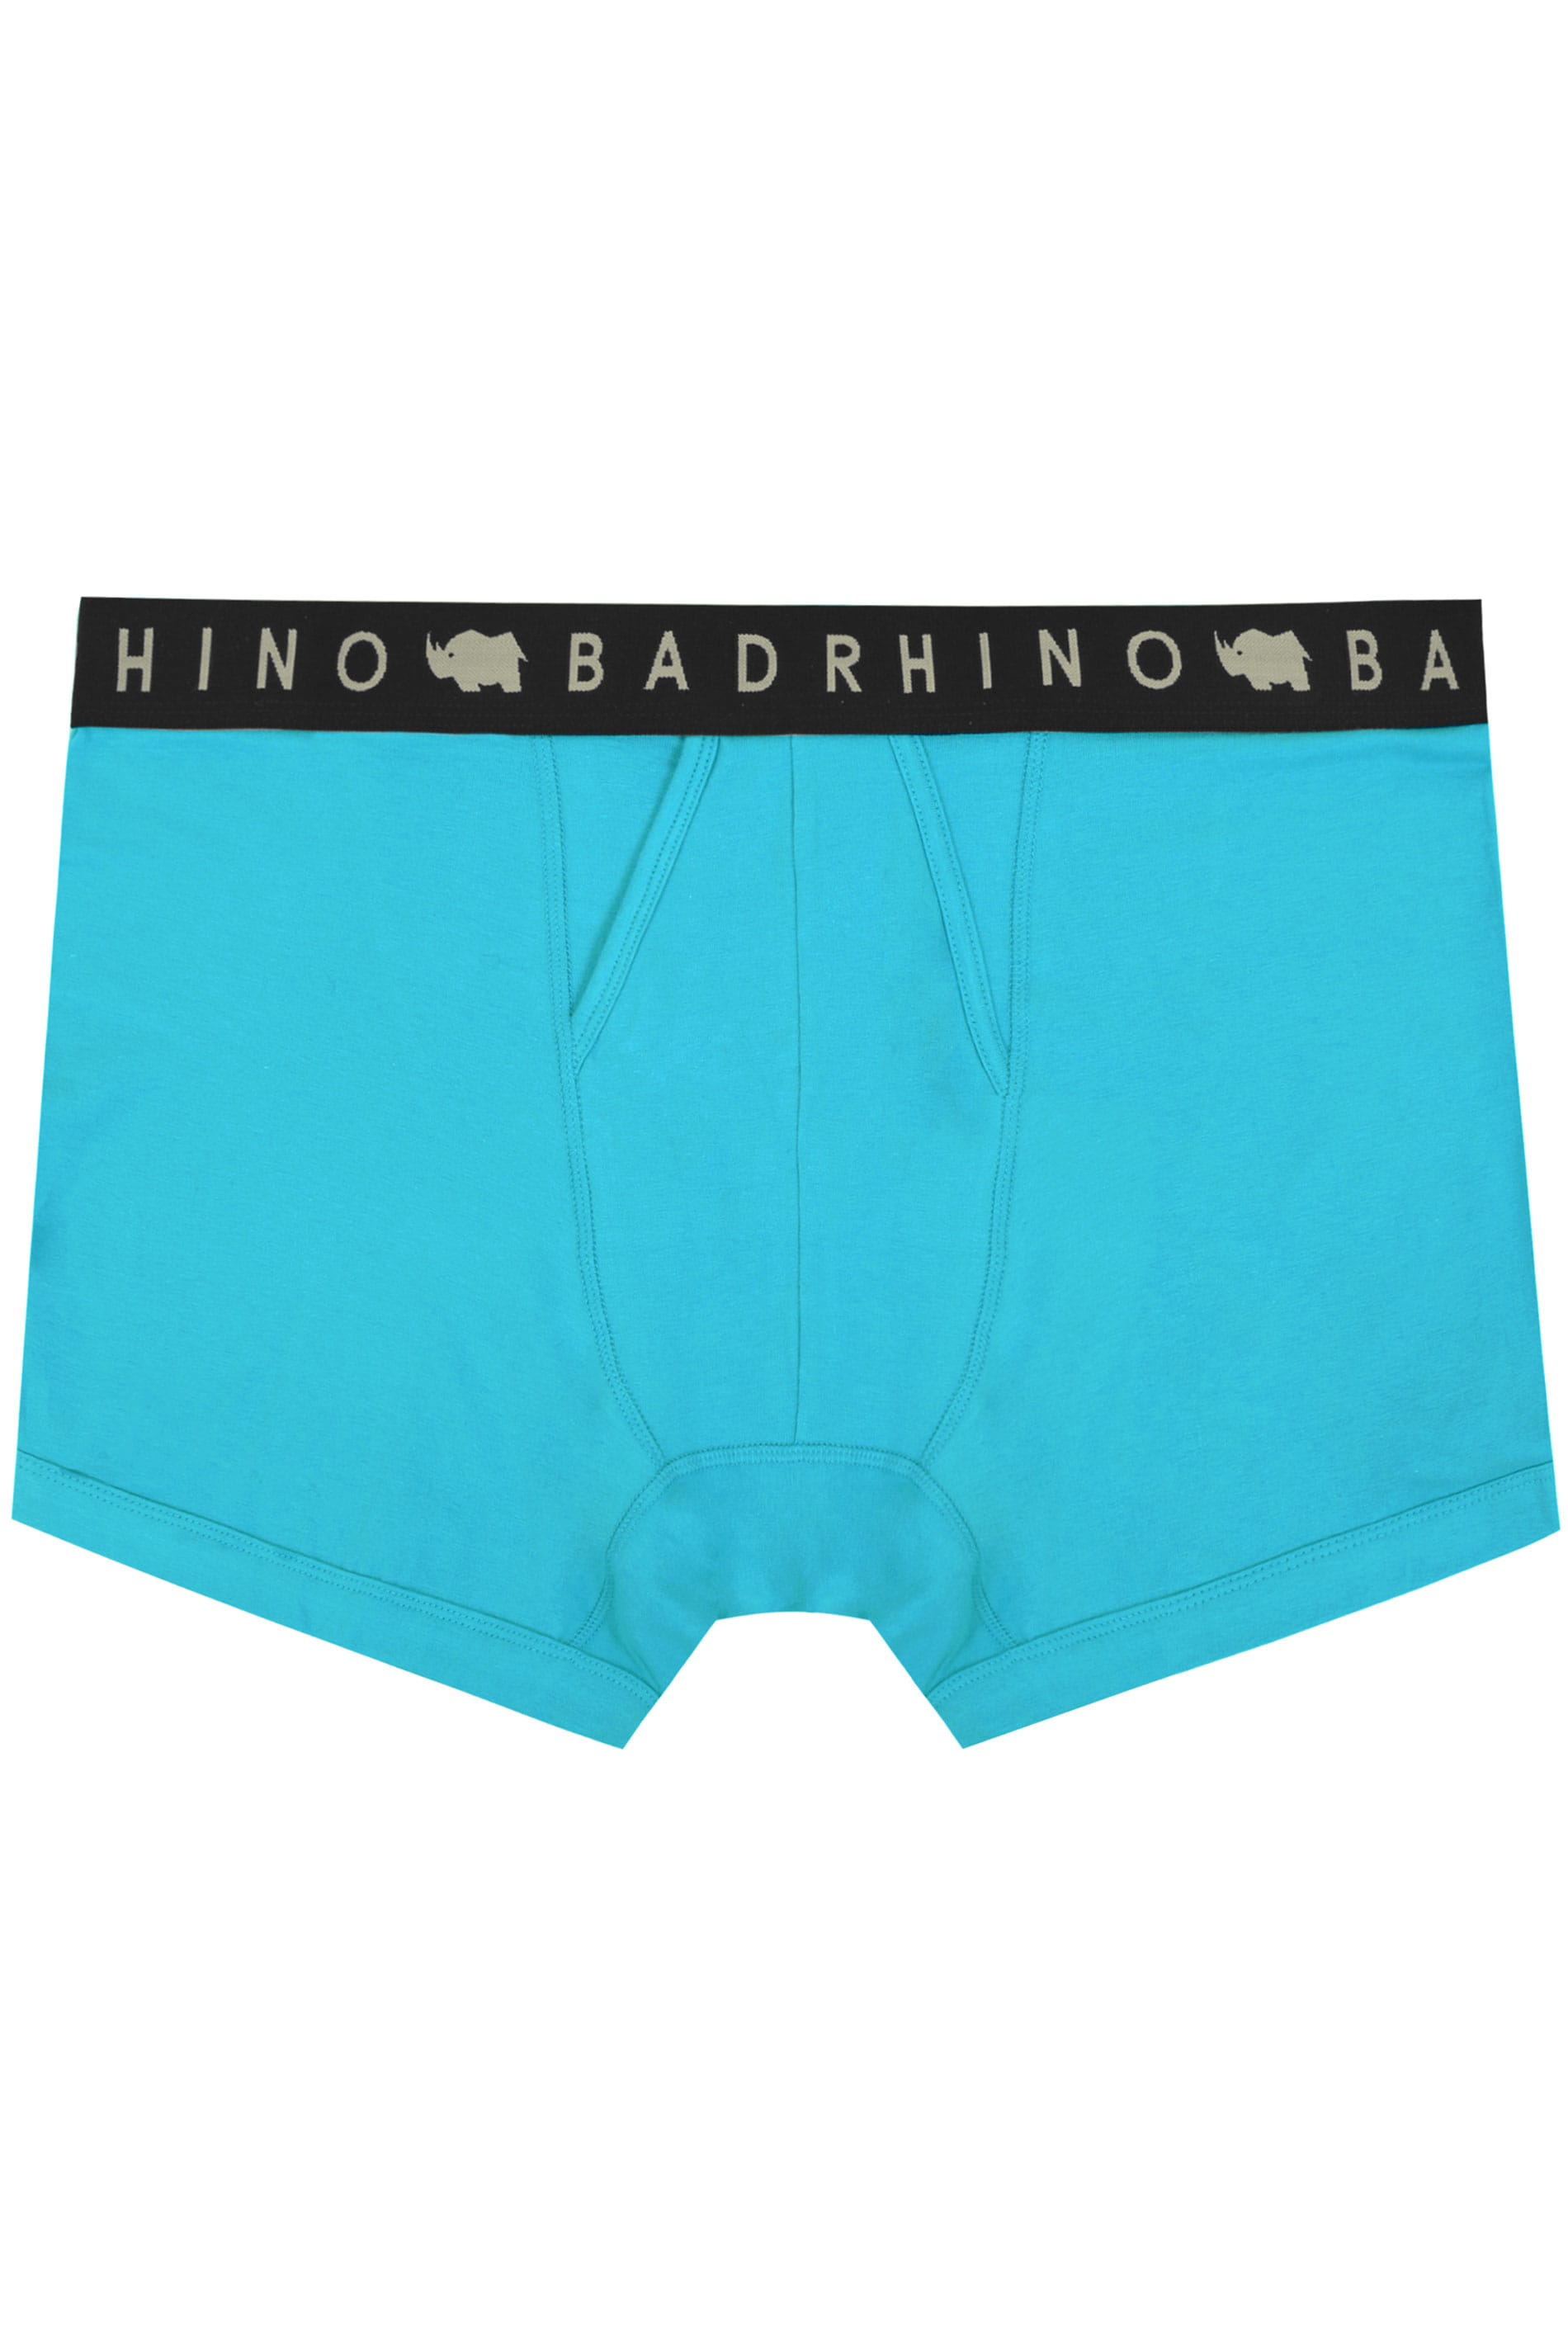 BadRhino Turquoise Elasticated A Front Boxers